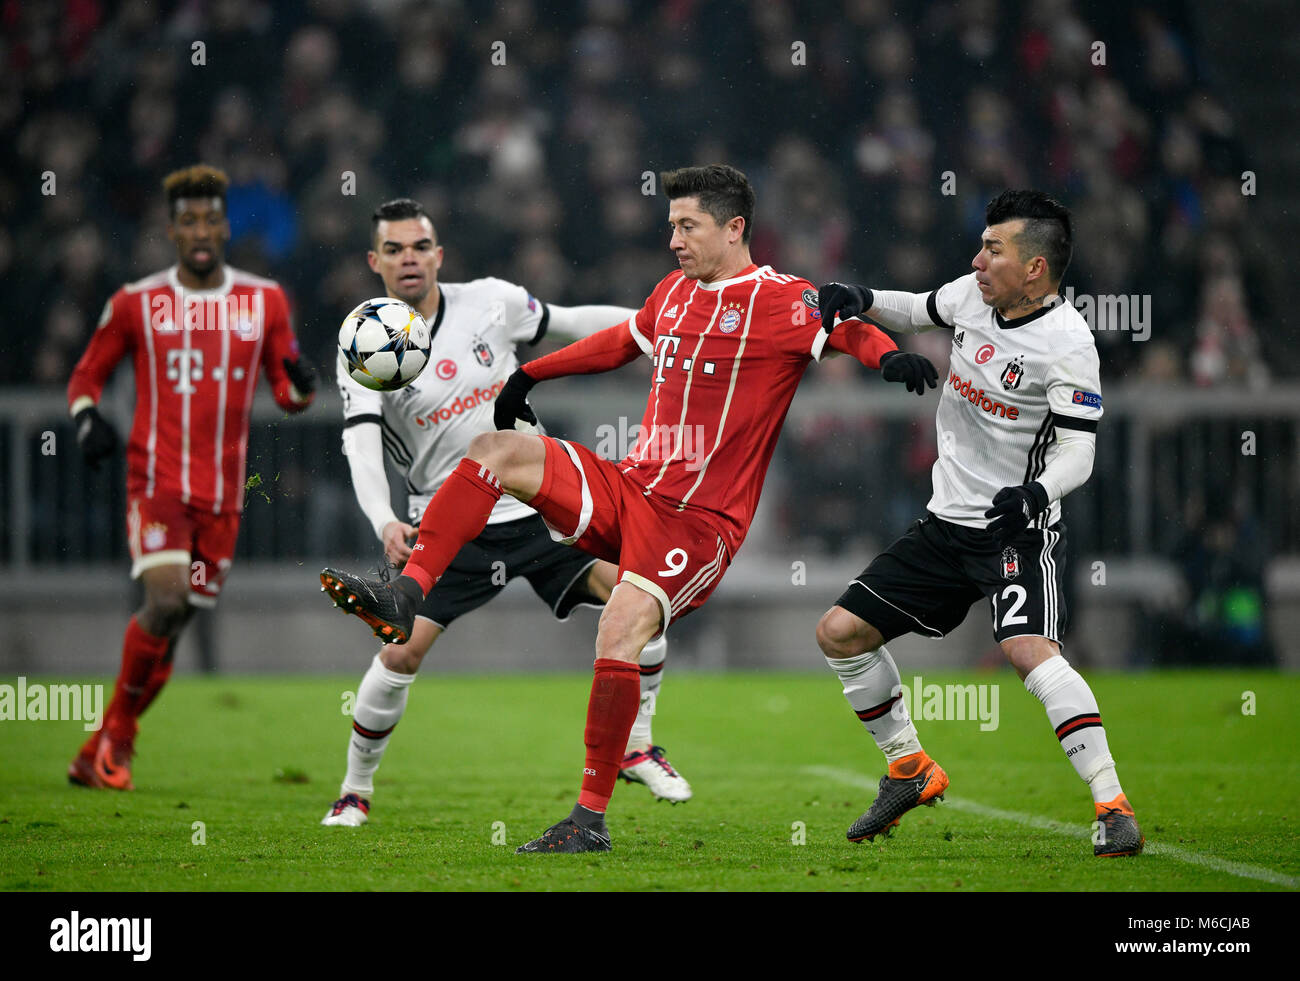 Tackling, action Robert Lewandowski of FC Bayern Munich against Gary Medel of Besiktas Istanbul on the right, behind - Stock Image